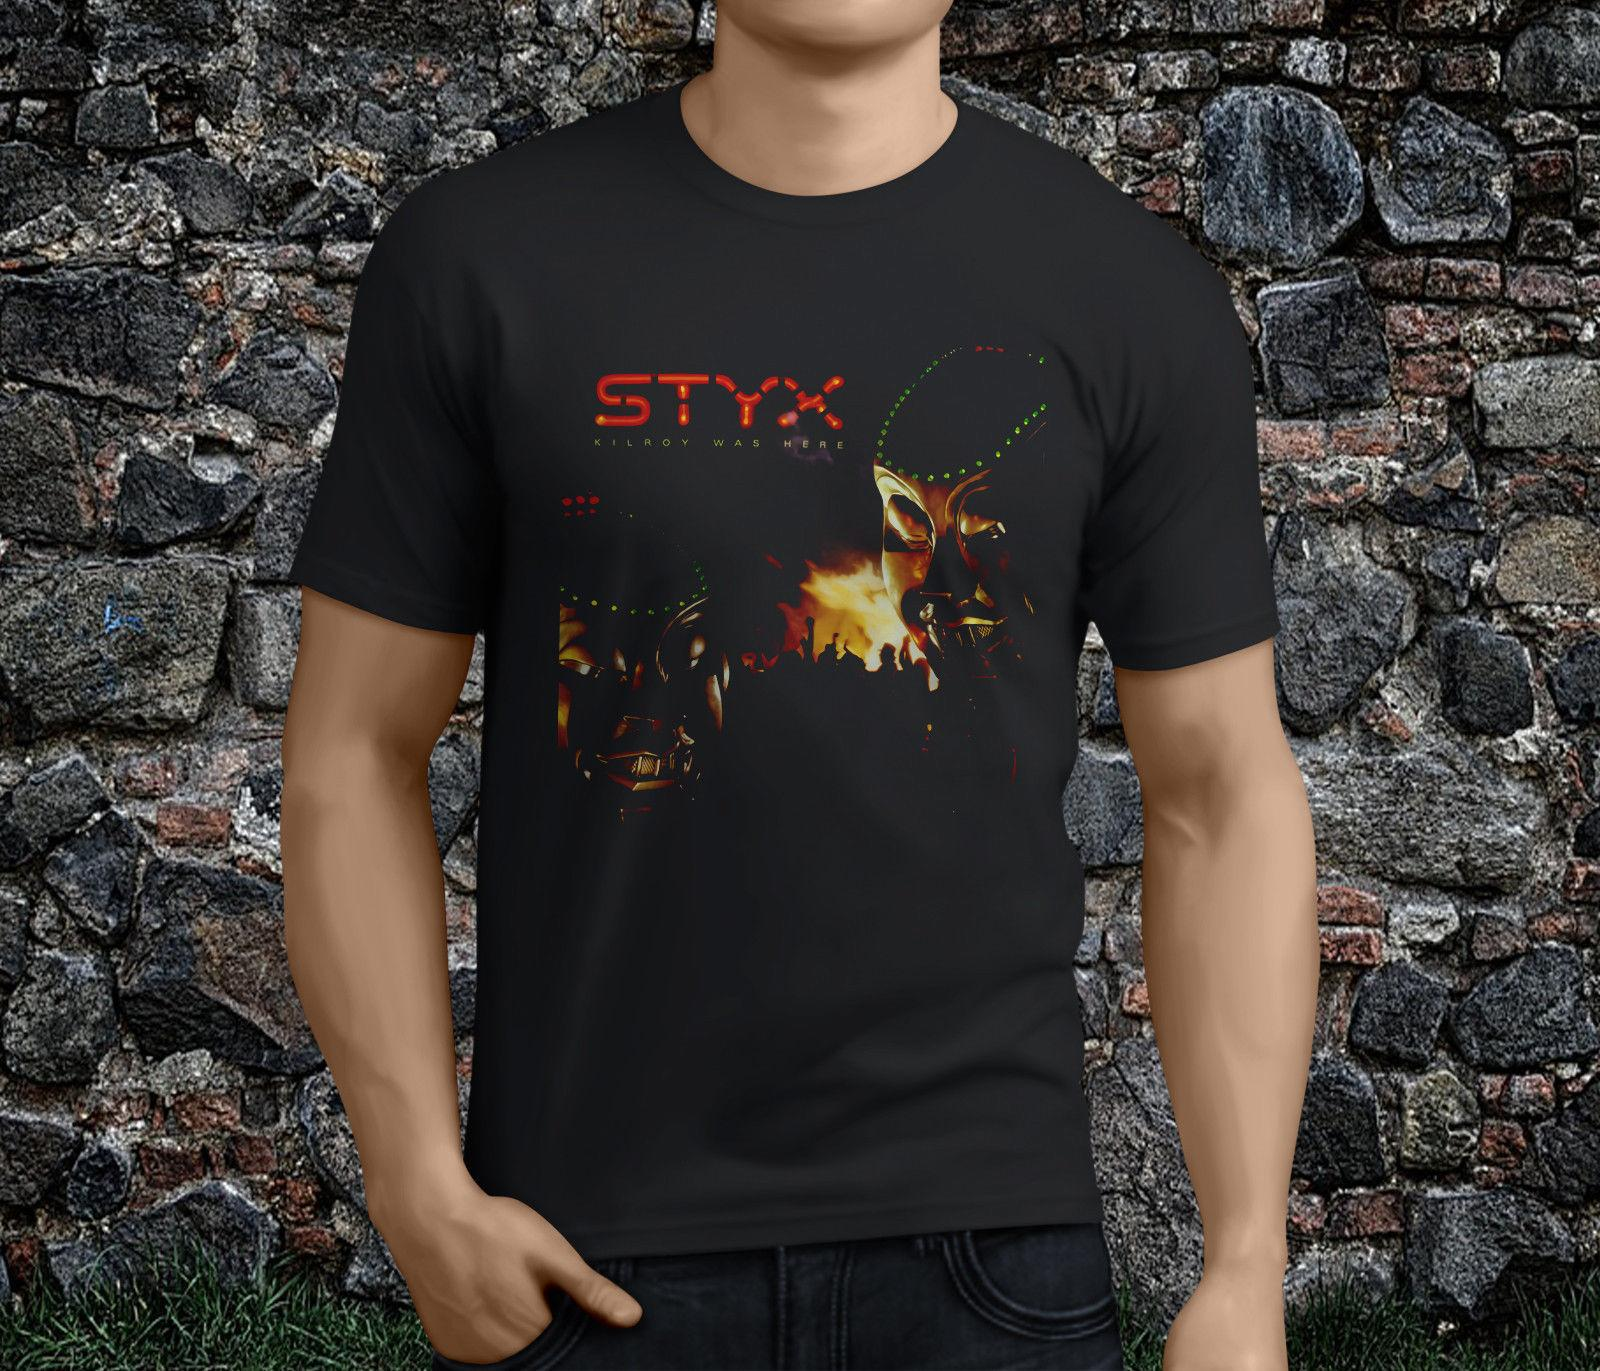 b47bbe42324 New Popular STYX Kilroy Was Here American Rock Band Black Men's Tshirt  S-3XL New Brand-Clothing T Shirts Printed Men T Shirt Clothes